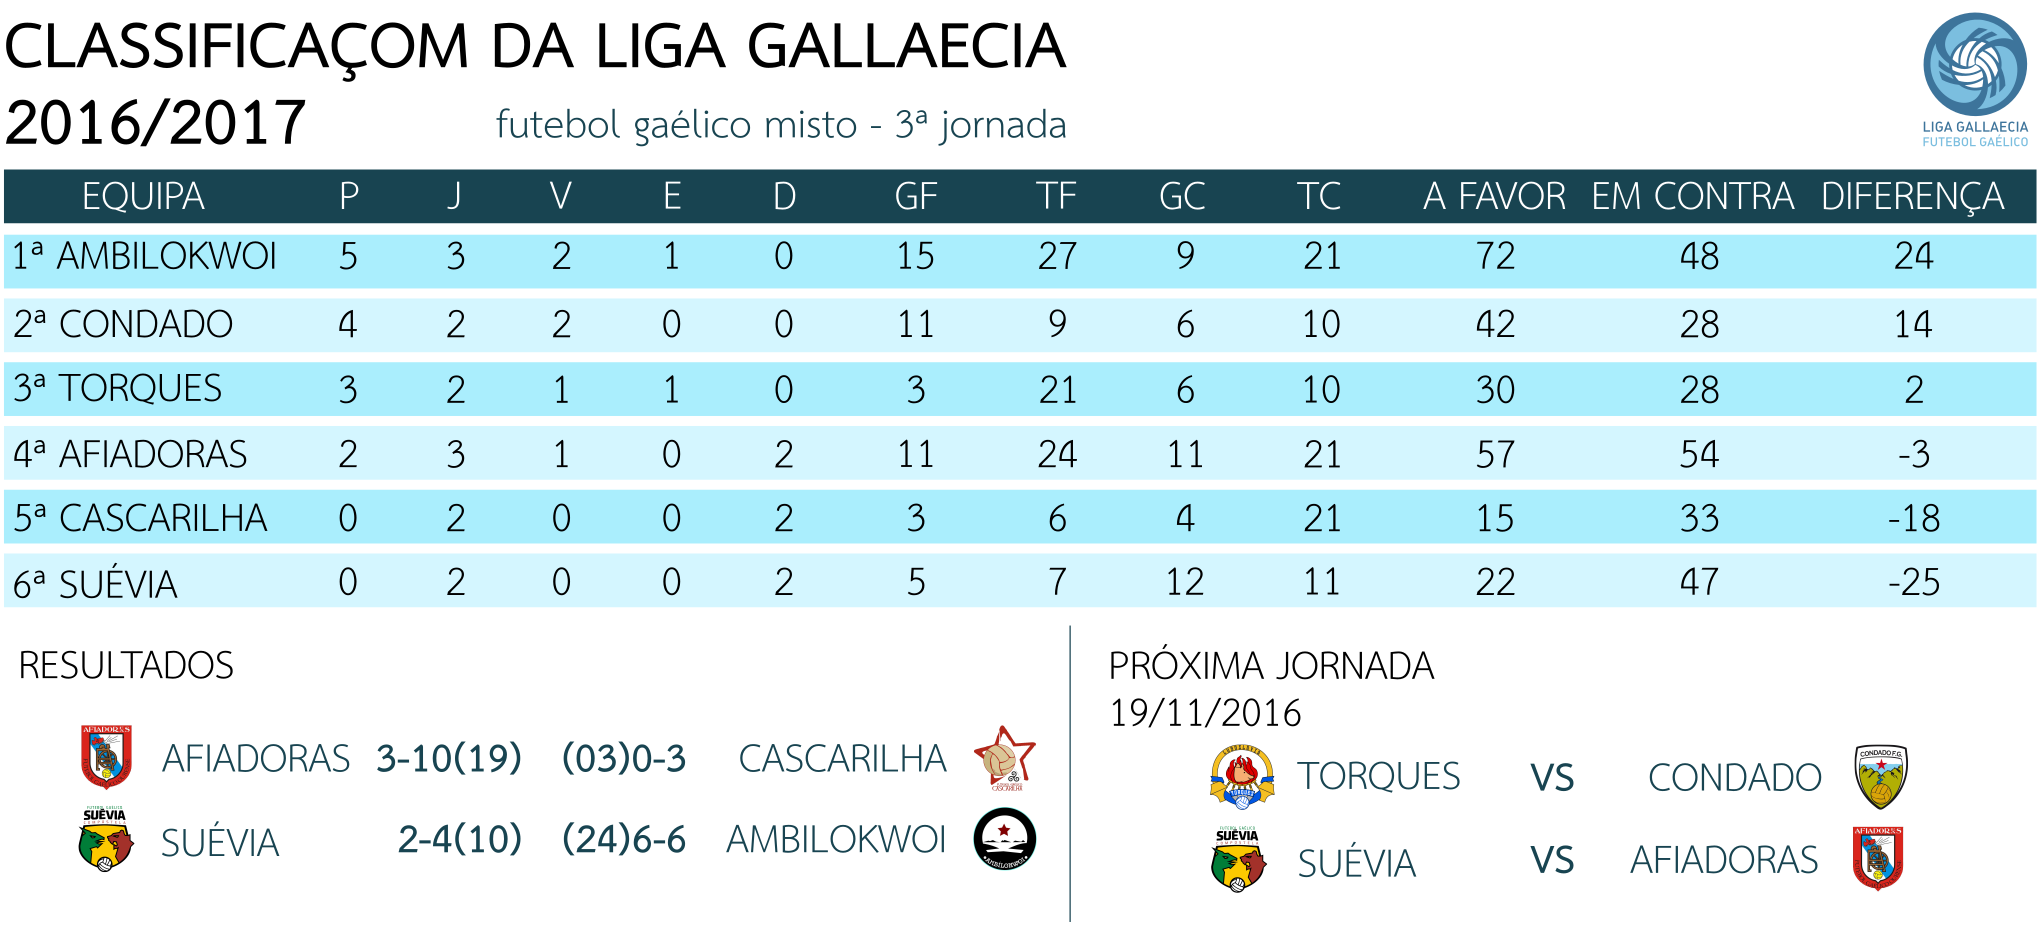 classifica_3Jornada_1617